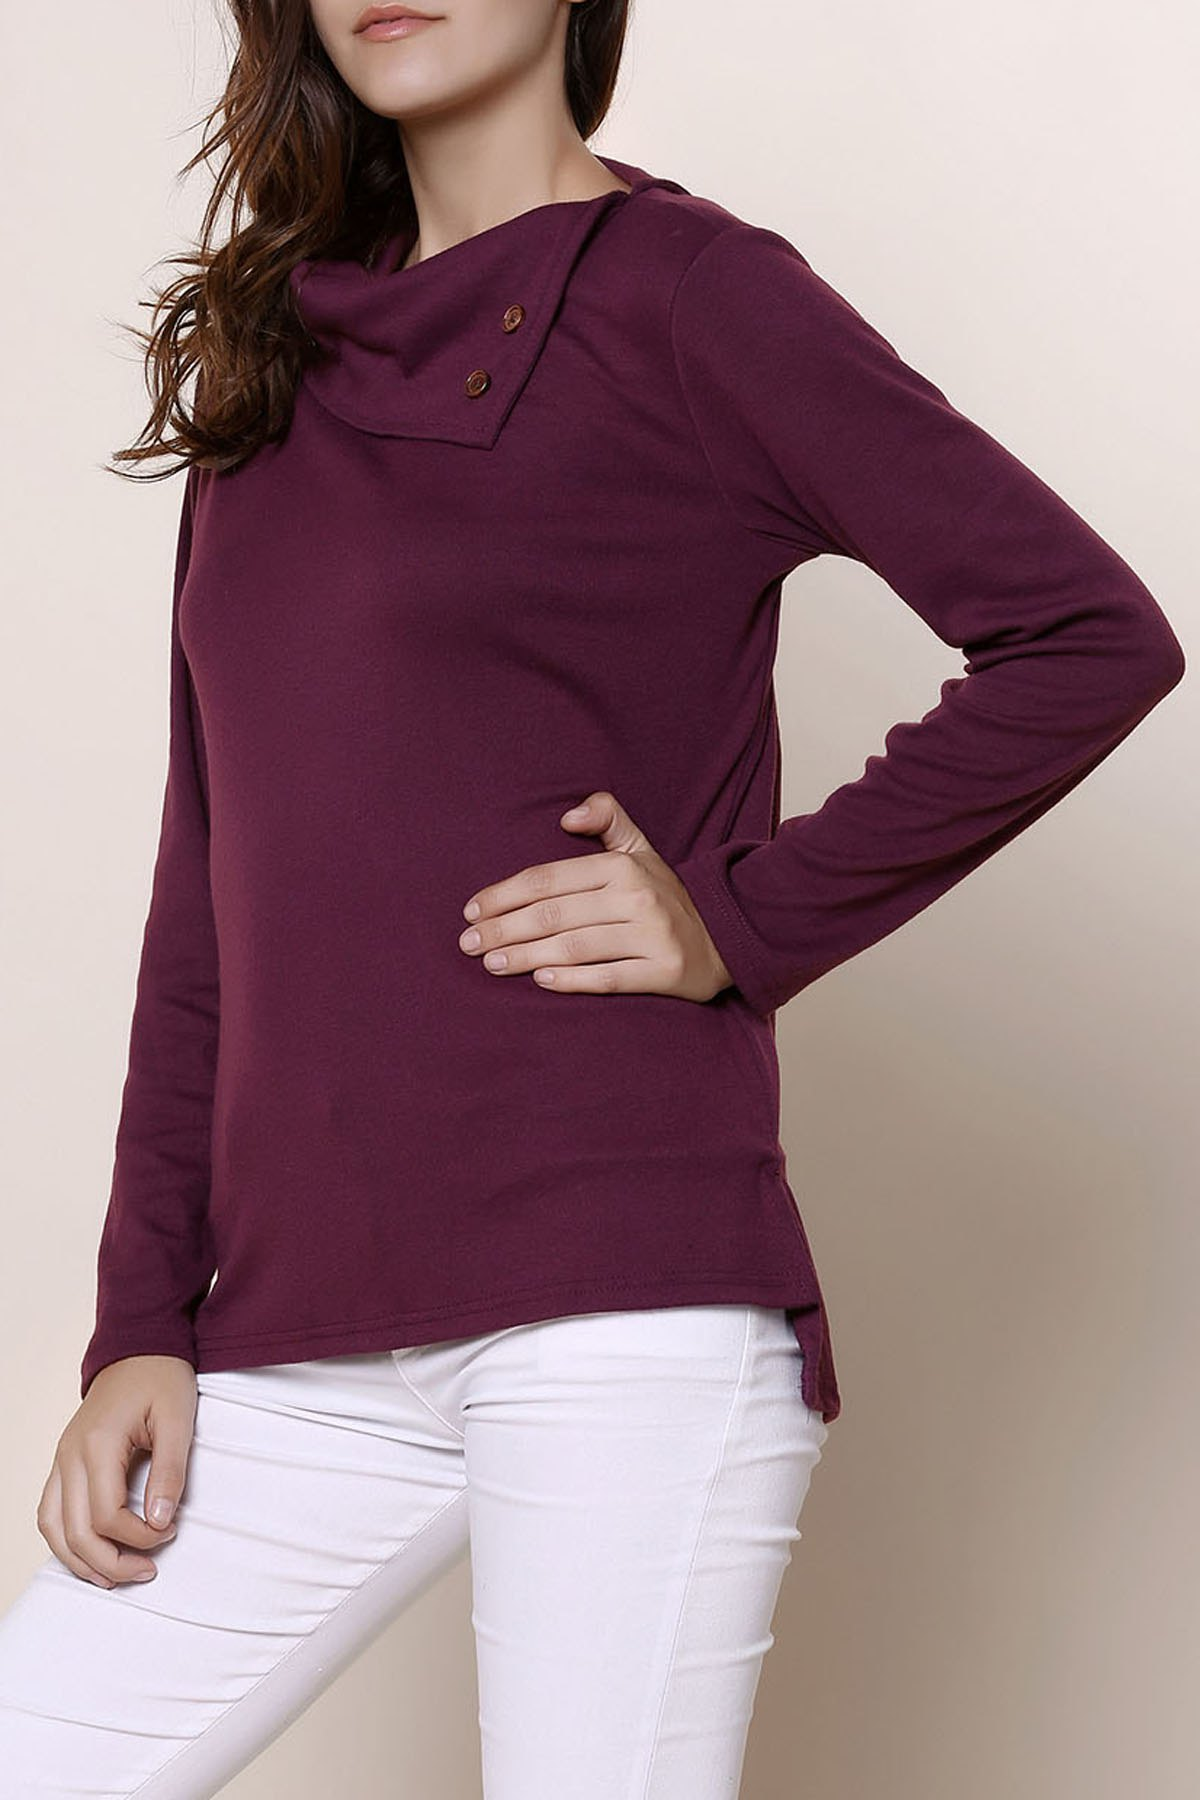 Solid Color Buttoned Cowl Neck Long Sleeve T Shirt 161748907